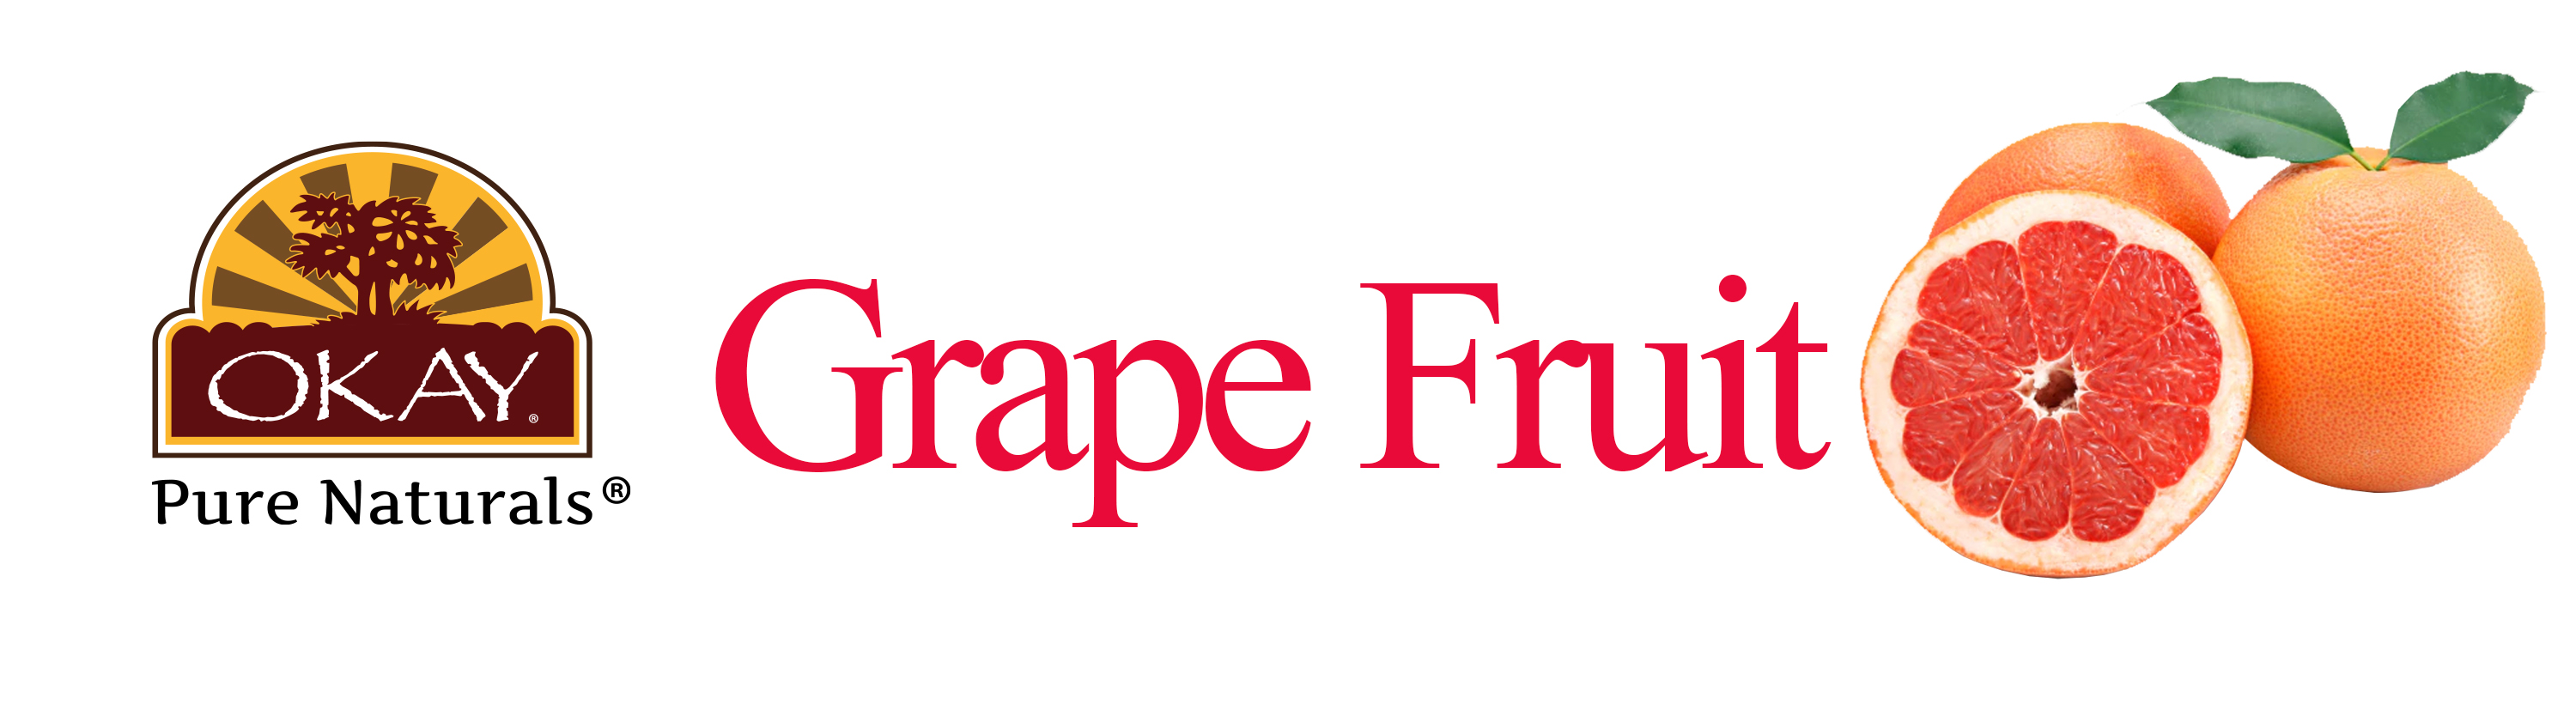 grape-fruit.jpg